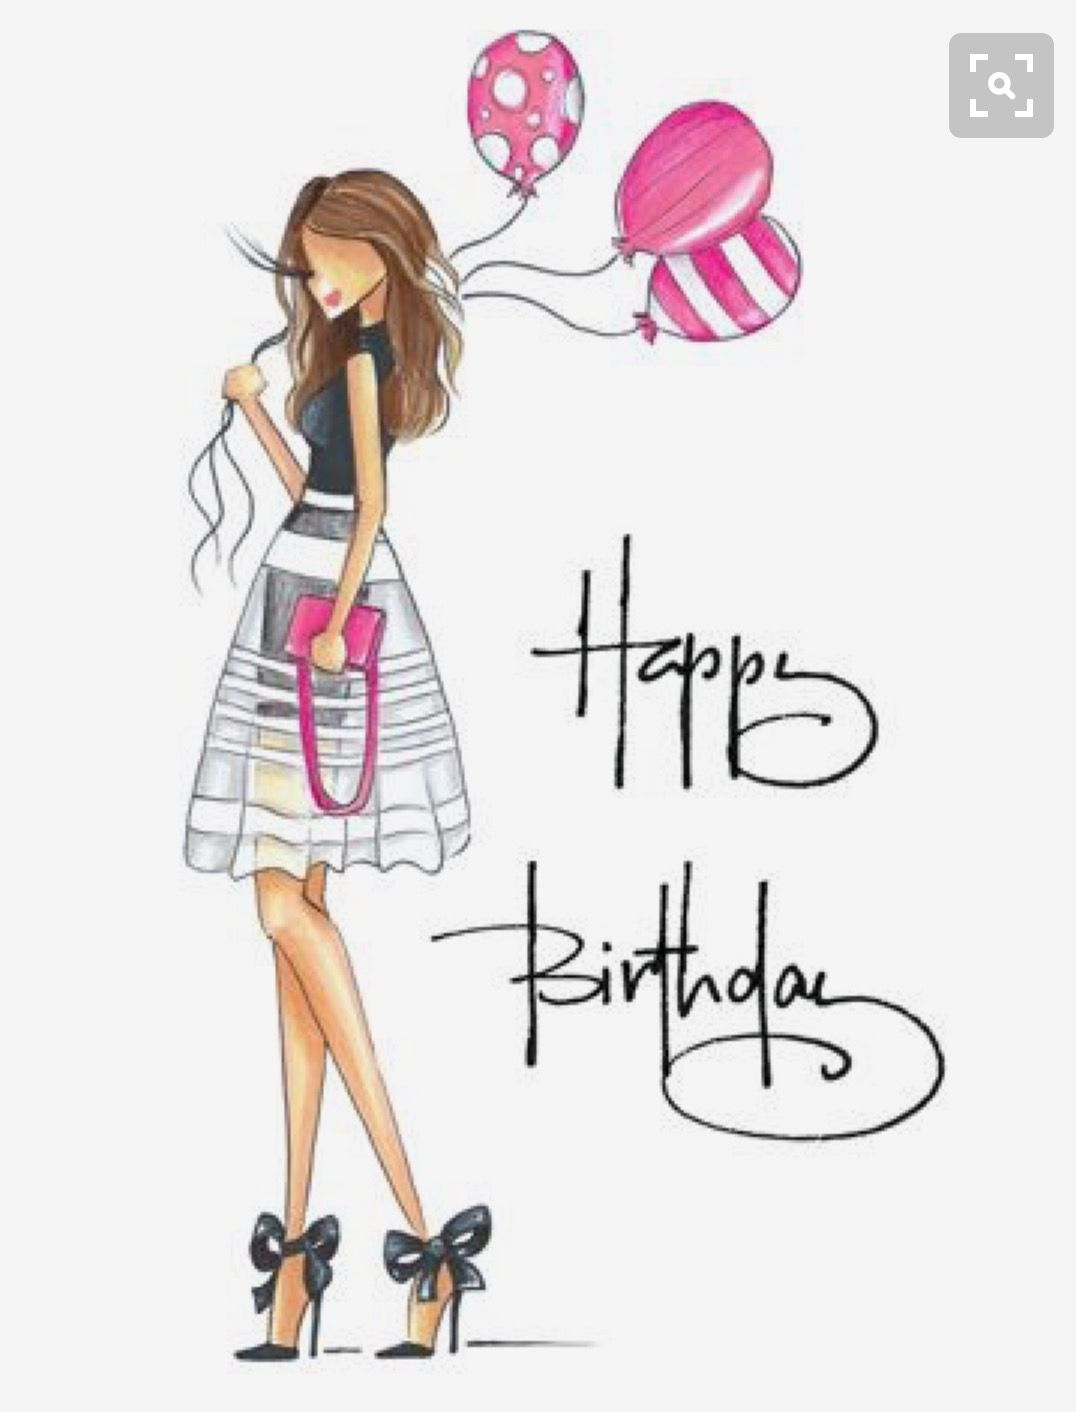 Pin By Judy Mumper On Happy Birthday Memes With Images Happy